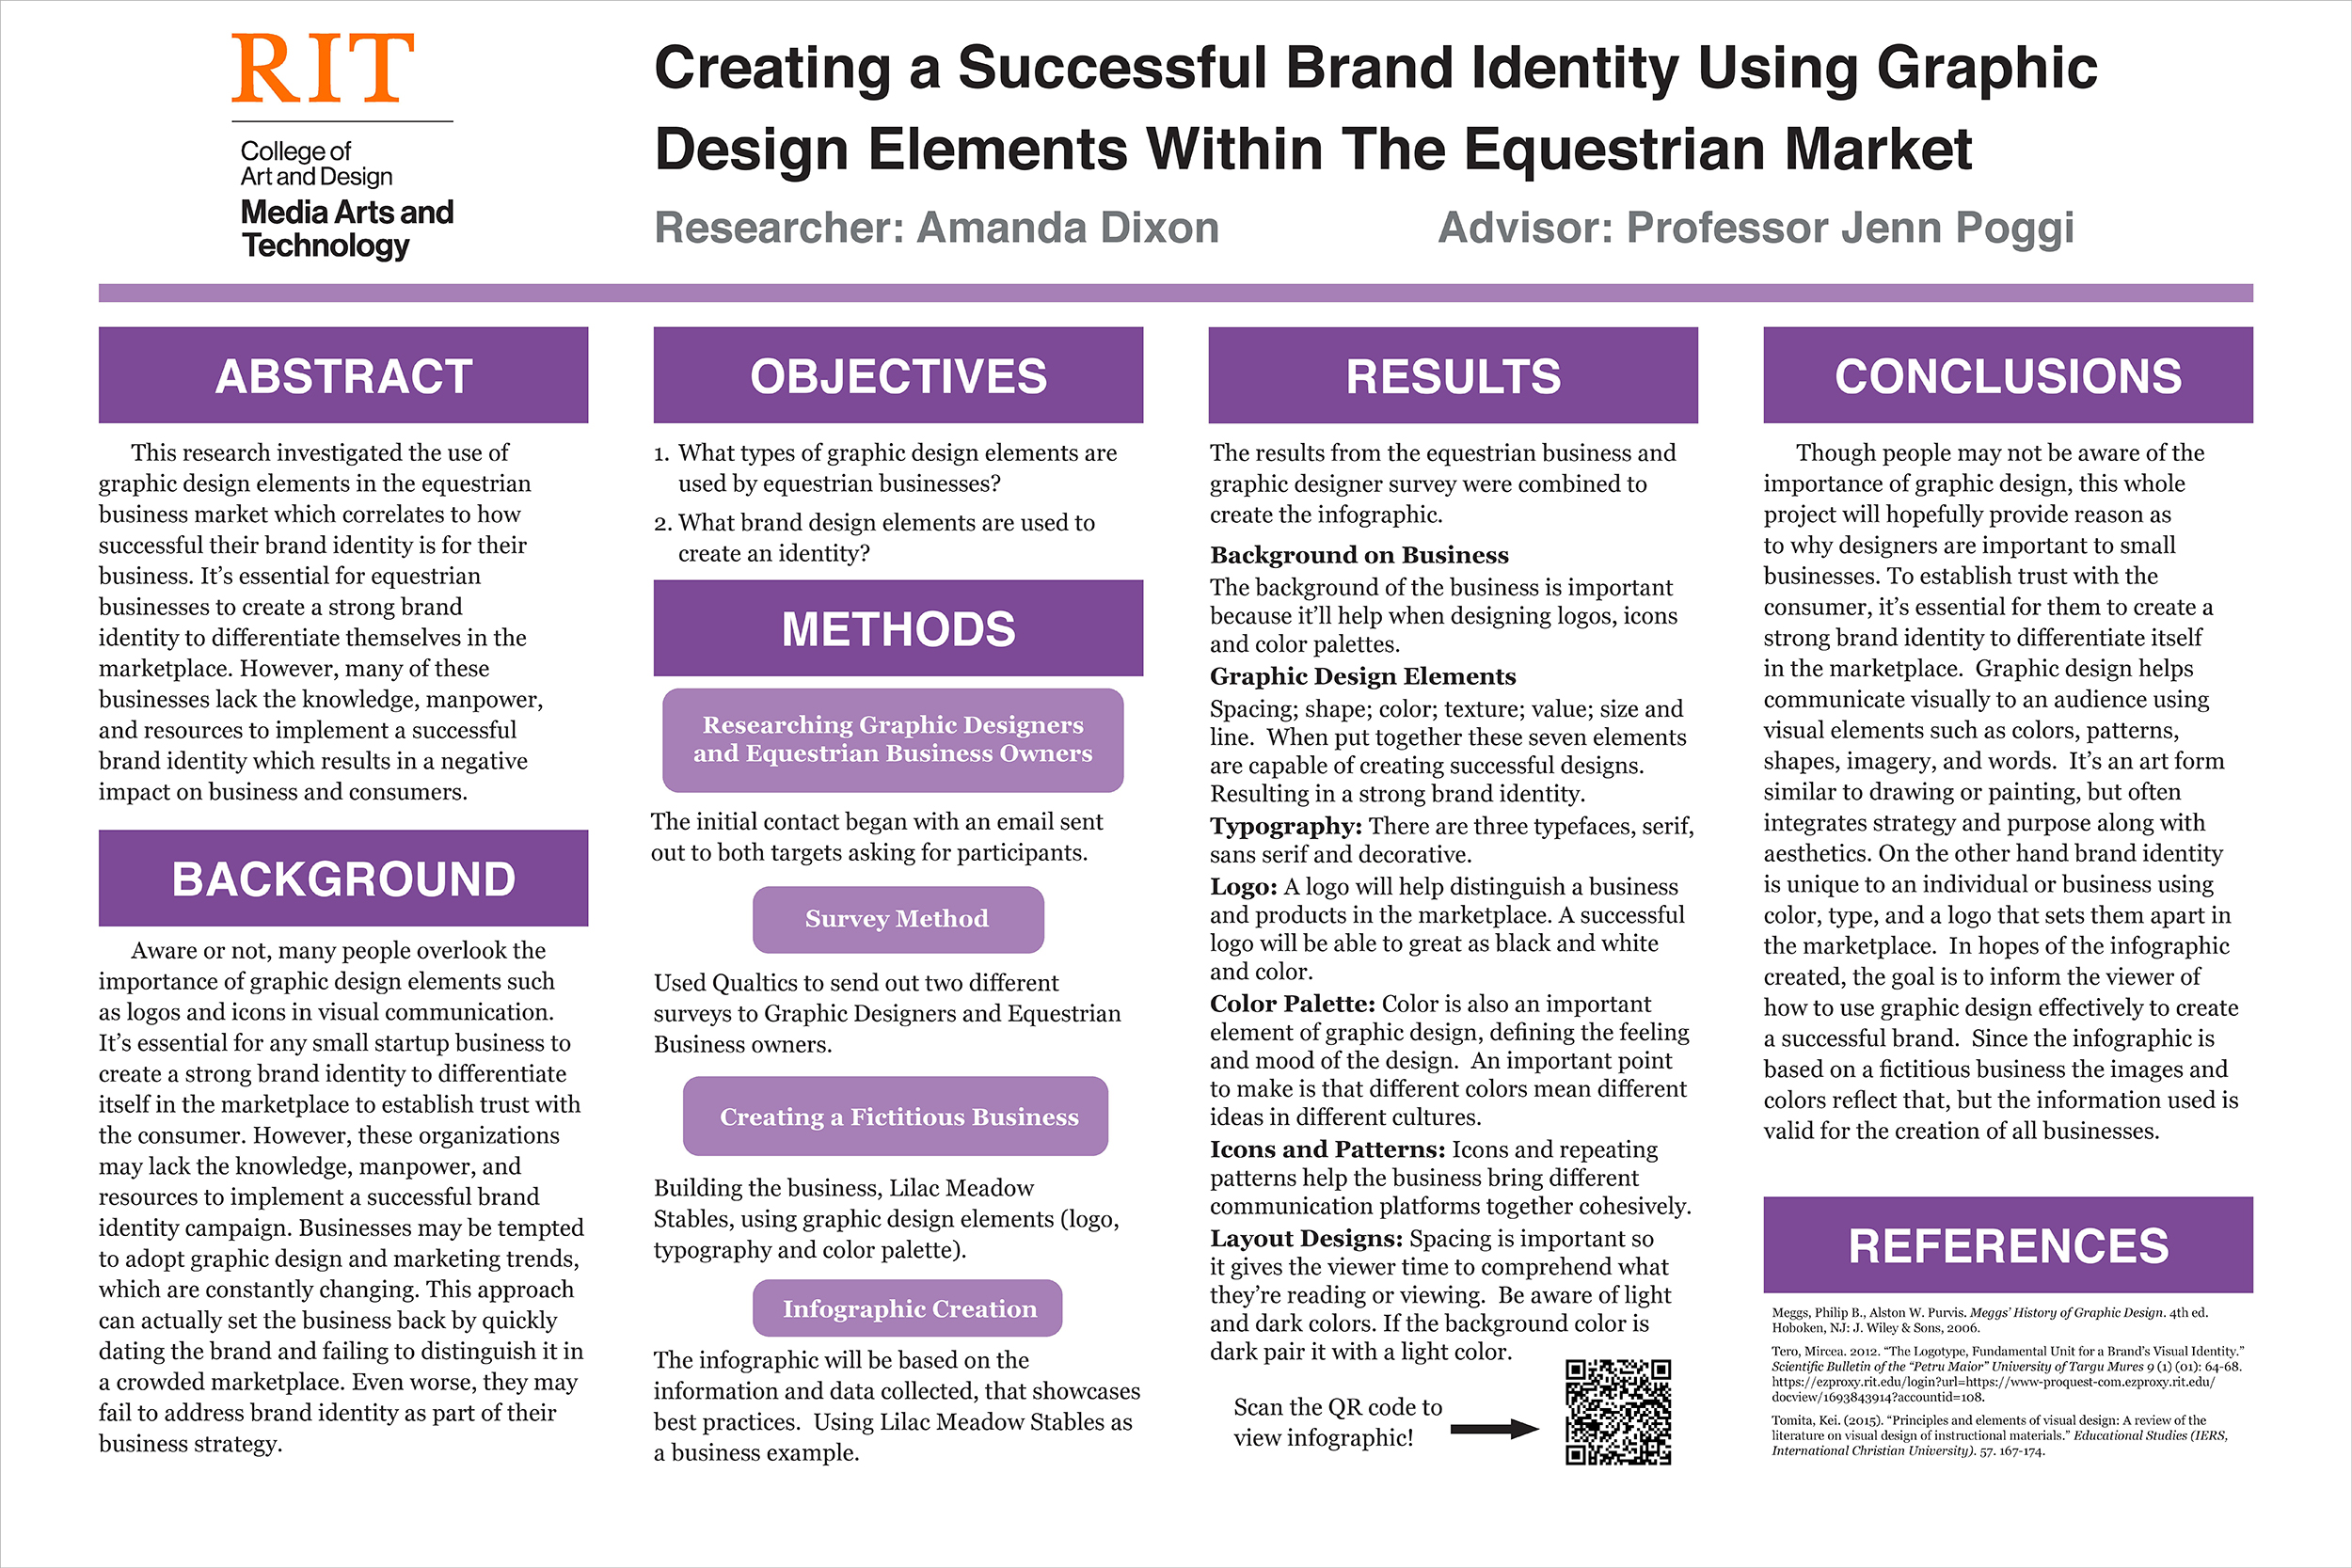 A poster about creating a brand identity using graphic design elements within the equestrian market.